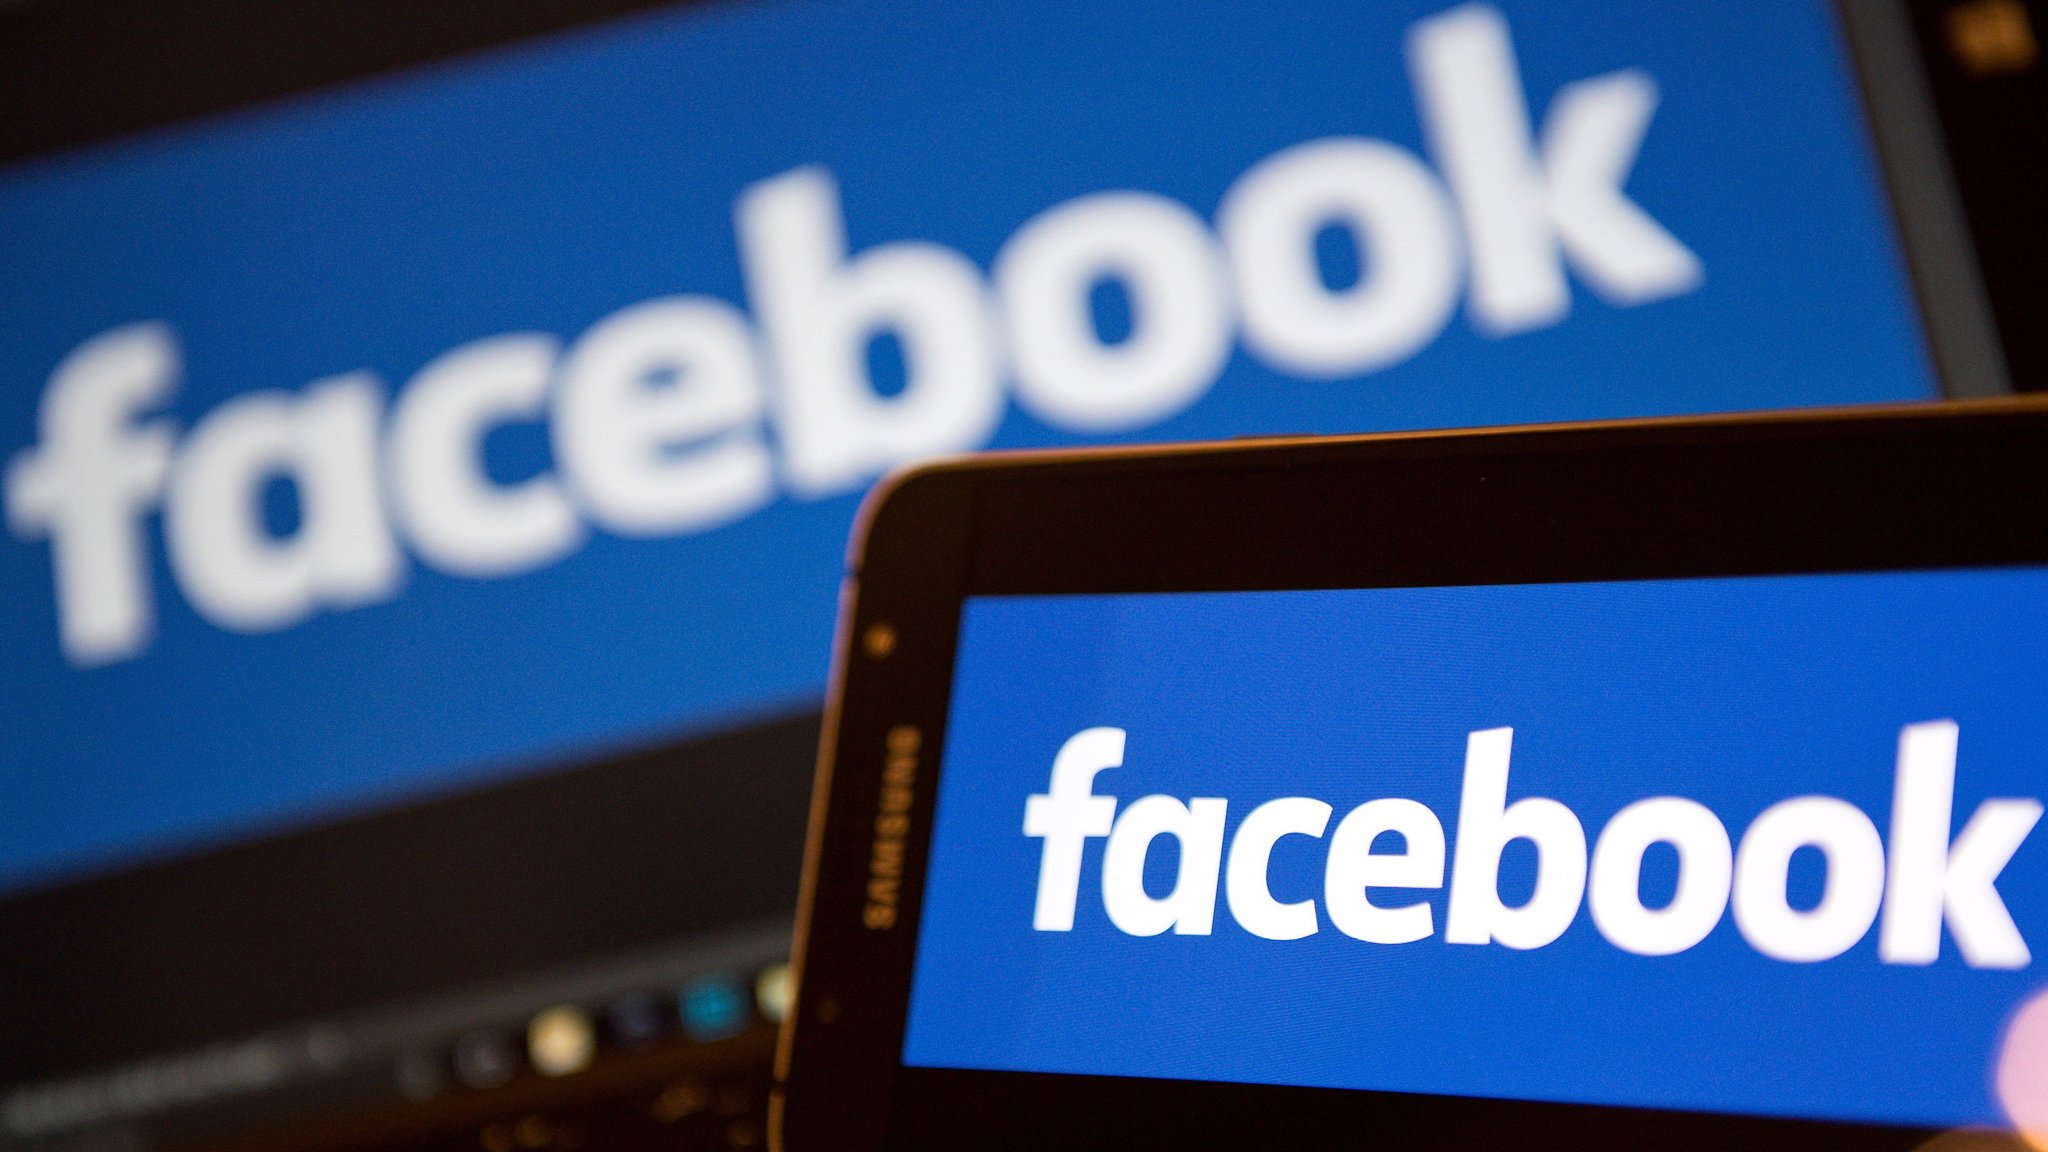 Facebook needs to make money by making lives better